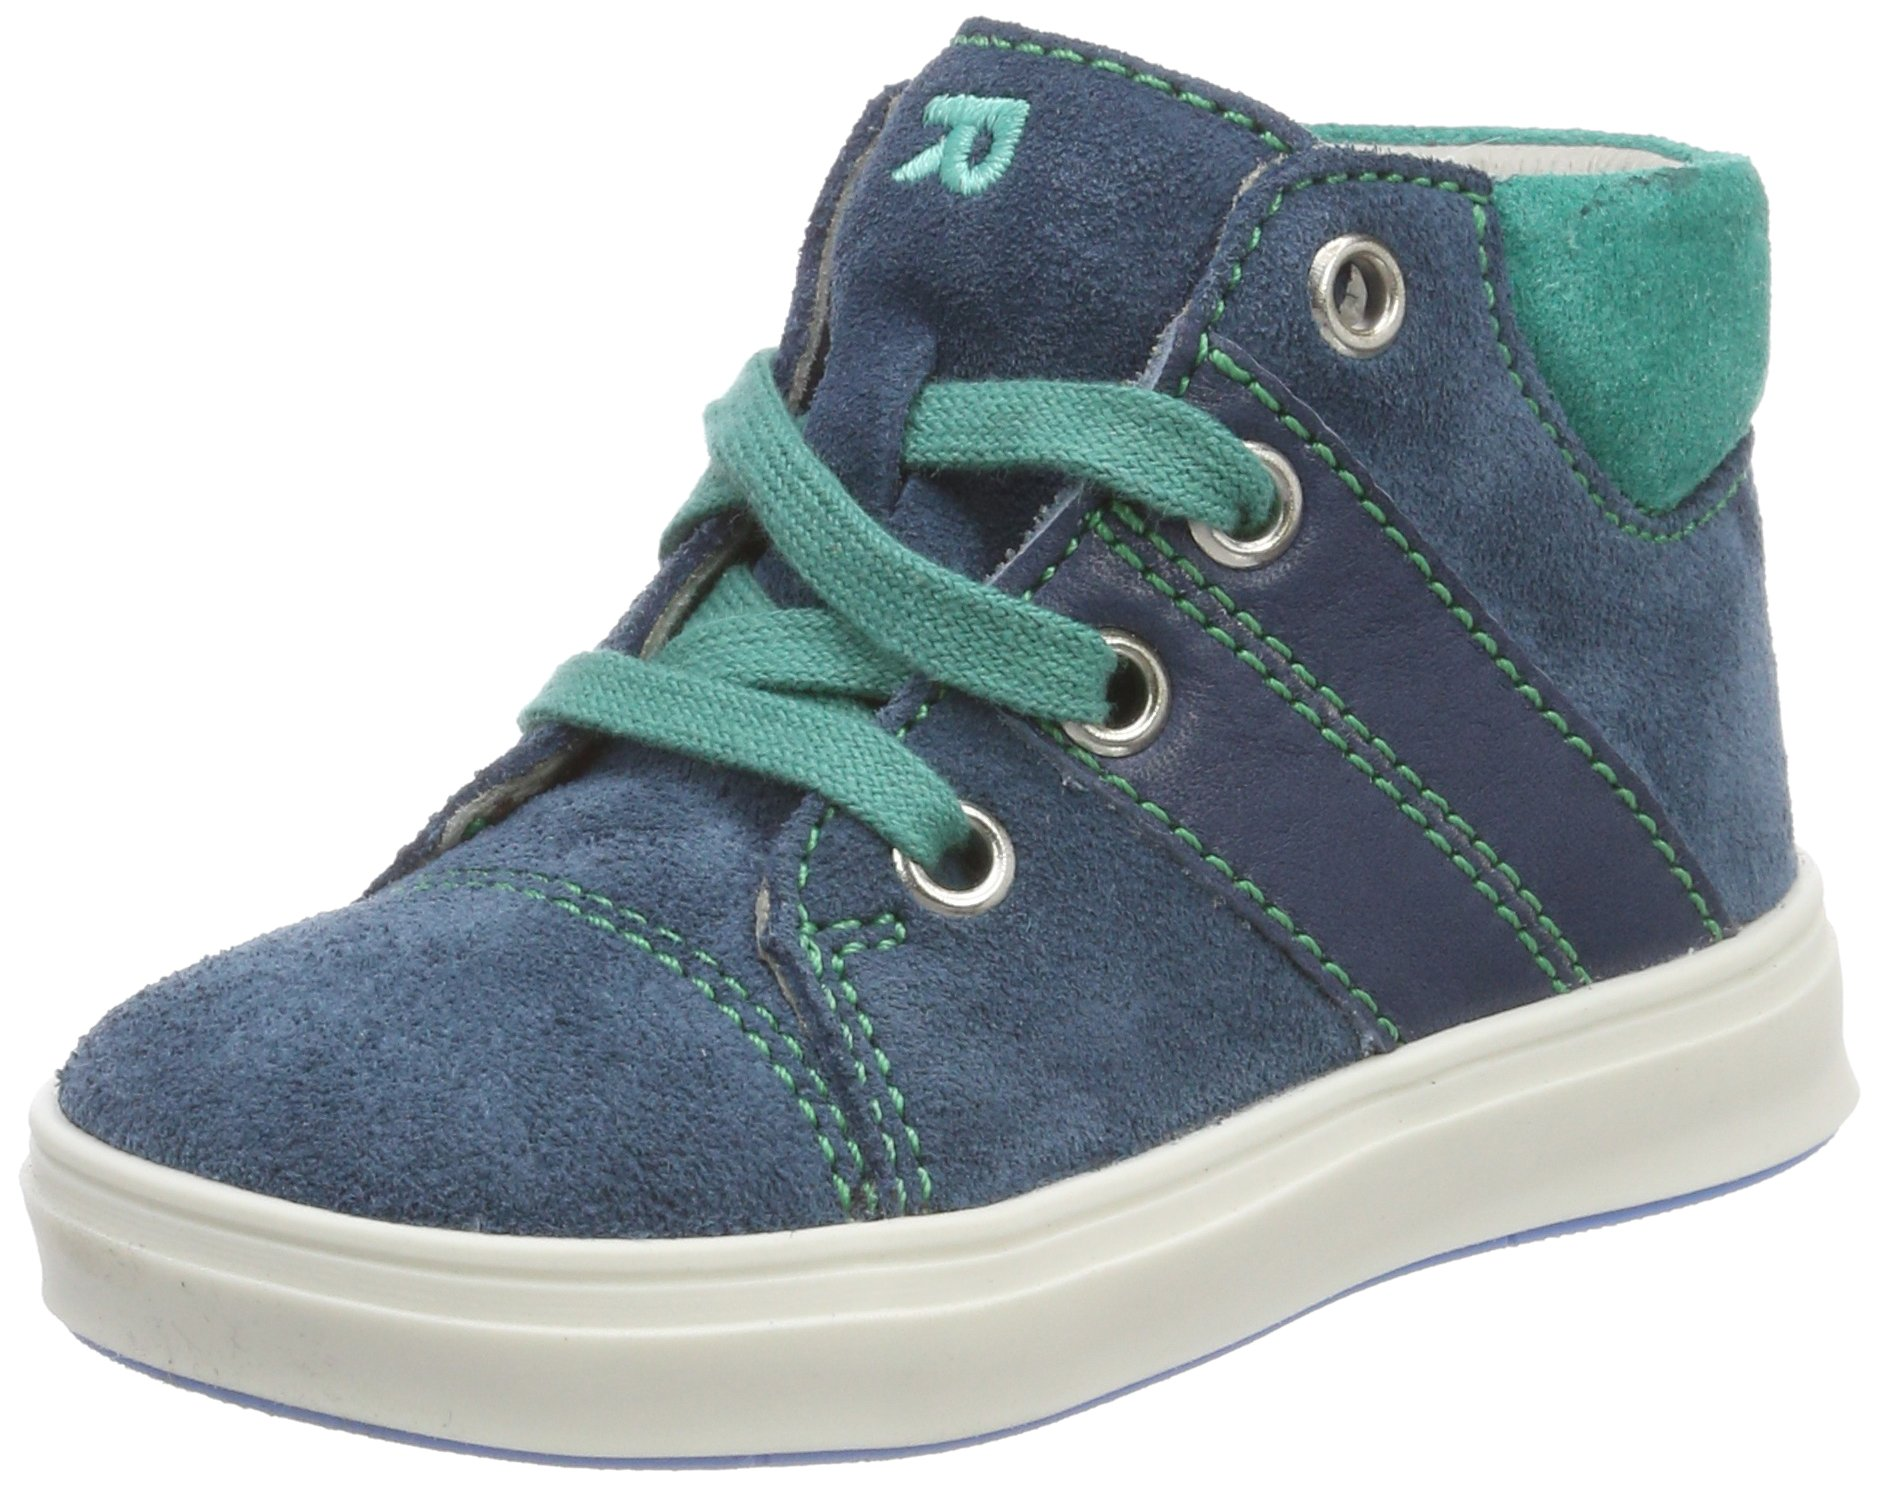 Richter Kinderschuhe Boys' Jimmy Derbys, Blue (Pacific/Menta 6701), 7.5 UK by Richter Kinderschuhe (Image #1)